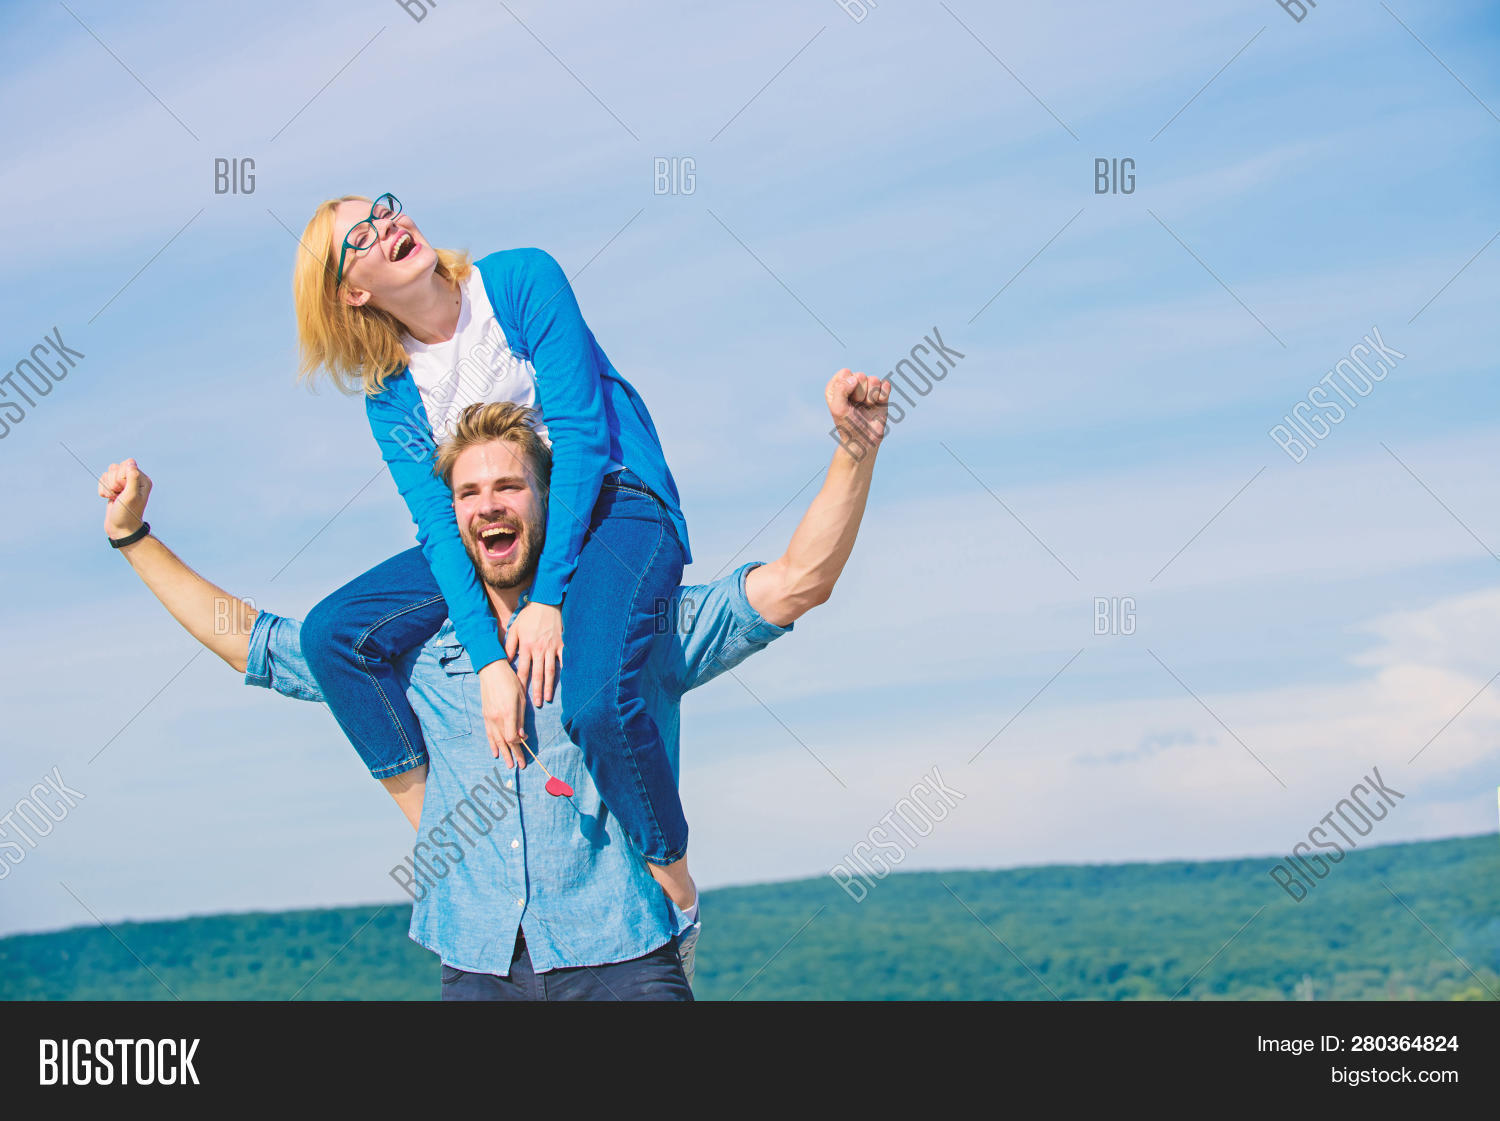 adorable,adult,background,beard,beloved,blue,carefree,carry,celebration,concept,couple,cute,date,day,defocused,emotions,enjoy,family,feel,feeling,free,freedom,fun,girlfriend,handsome,happiness,happy,have,holiday,love,man,marriage,nature,outdoor,pretty,relation,relationship,romance,romantic,shoulders,sky,smile,soulmate,sunny,together,unshaven,walk,woman,young